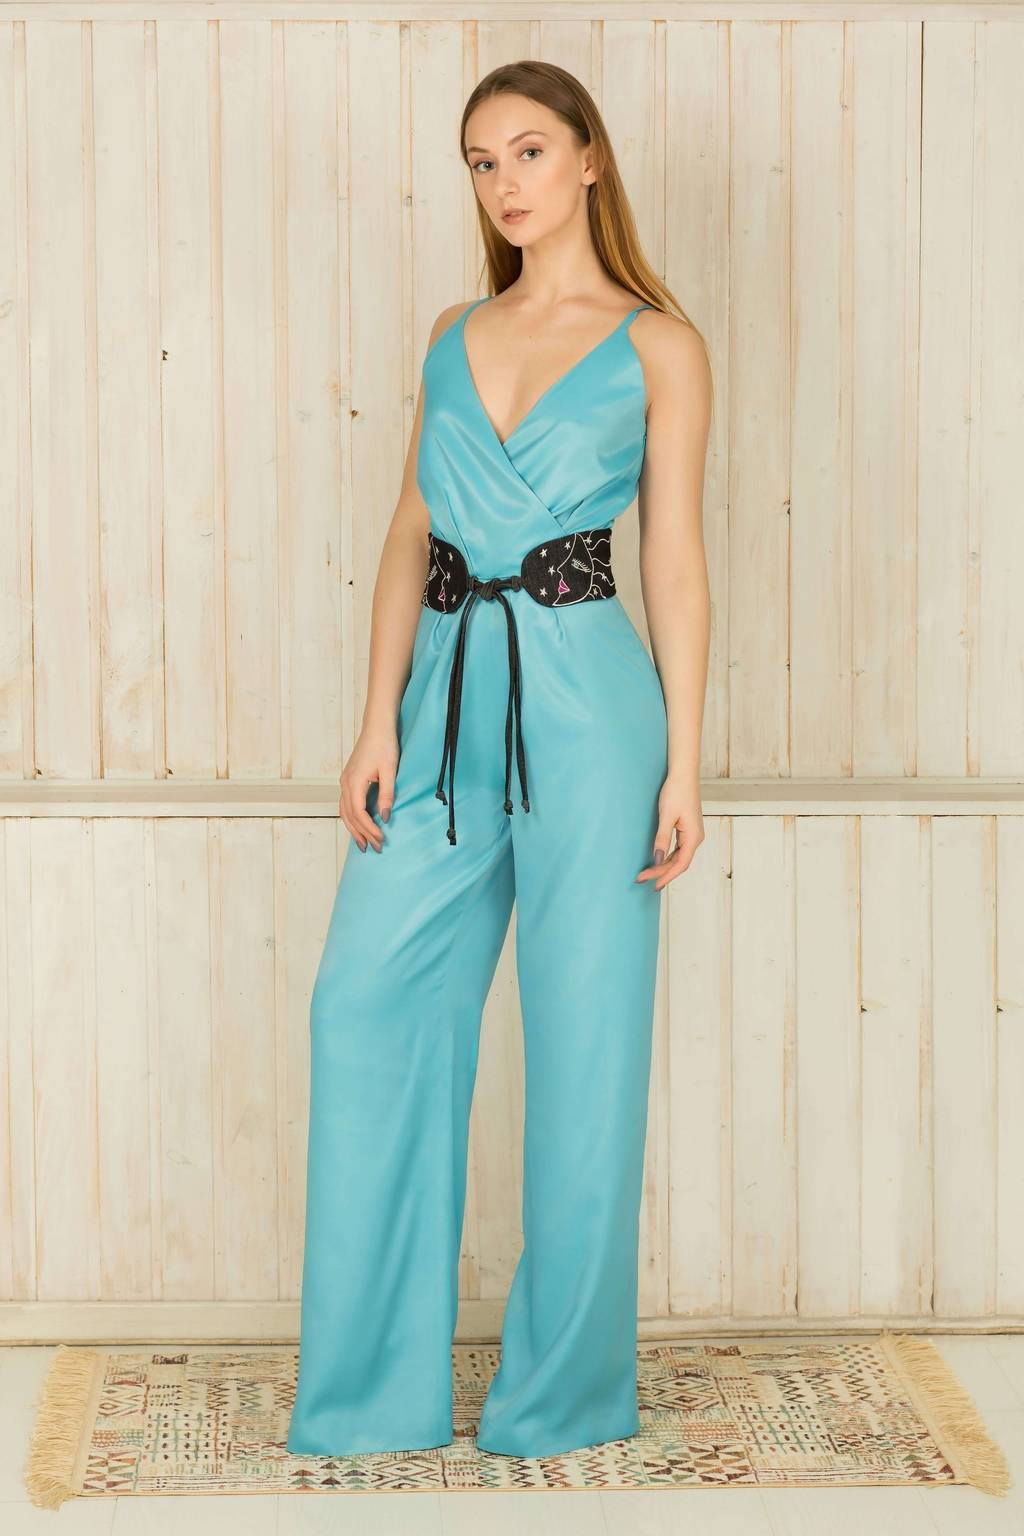 Jumpsuit with spaghetti straps